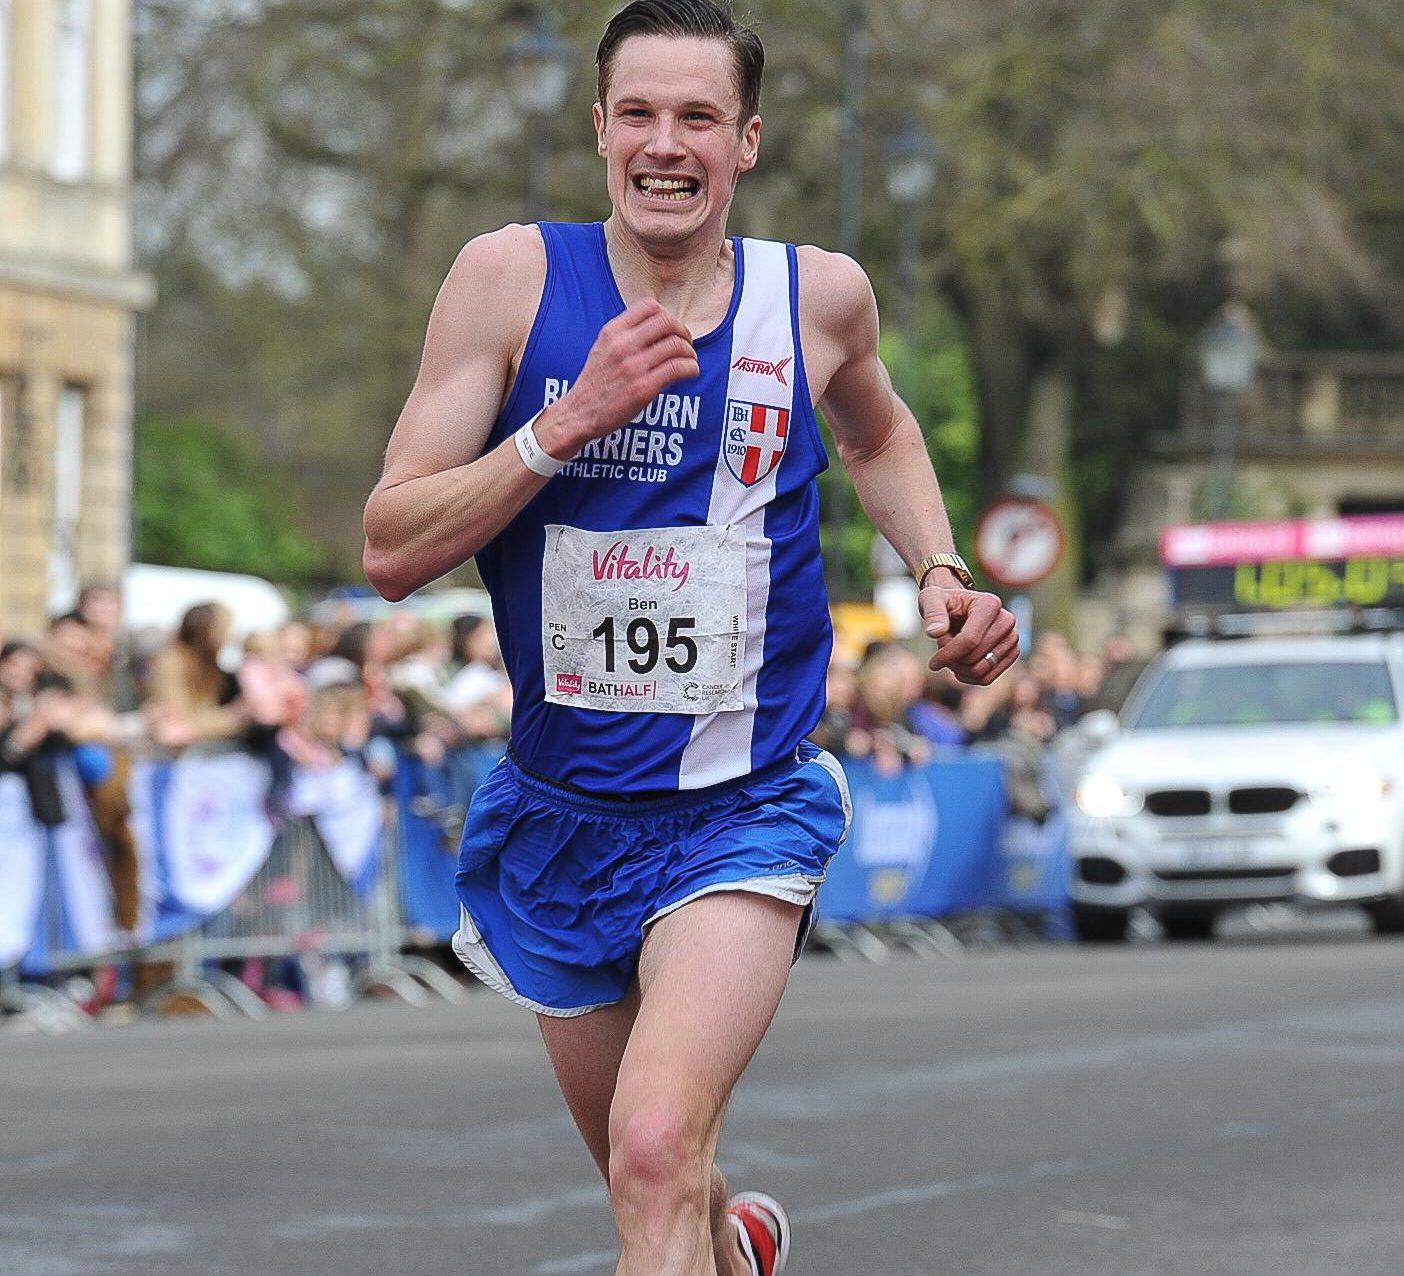 Ben does the double at Bath and Hastings Half-Marathons – New PB's for Harriers at Podium 5k – Harriers at Inter-Counties & English Schools XC Championships – Bispham 10 and Roddlesworth Roller